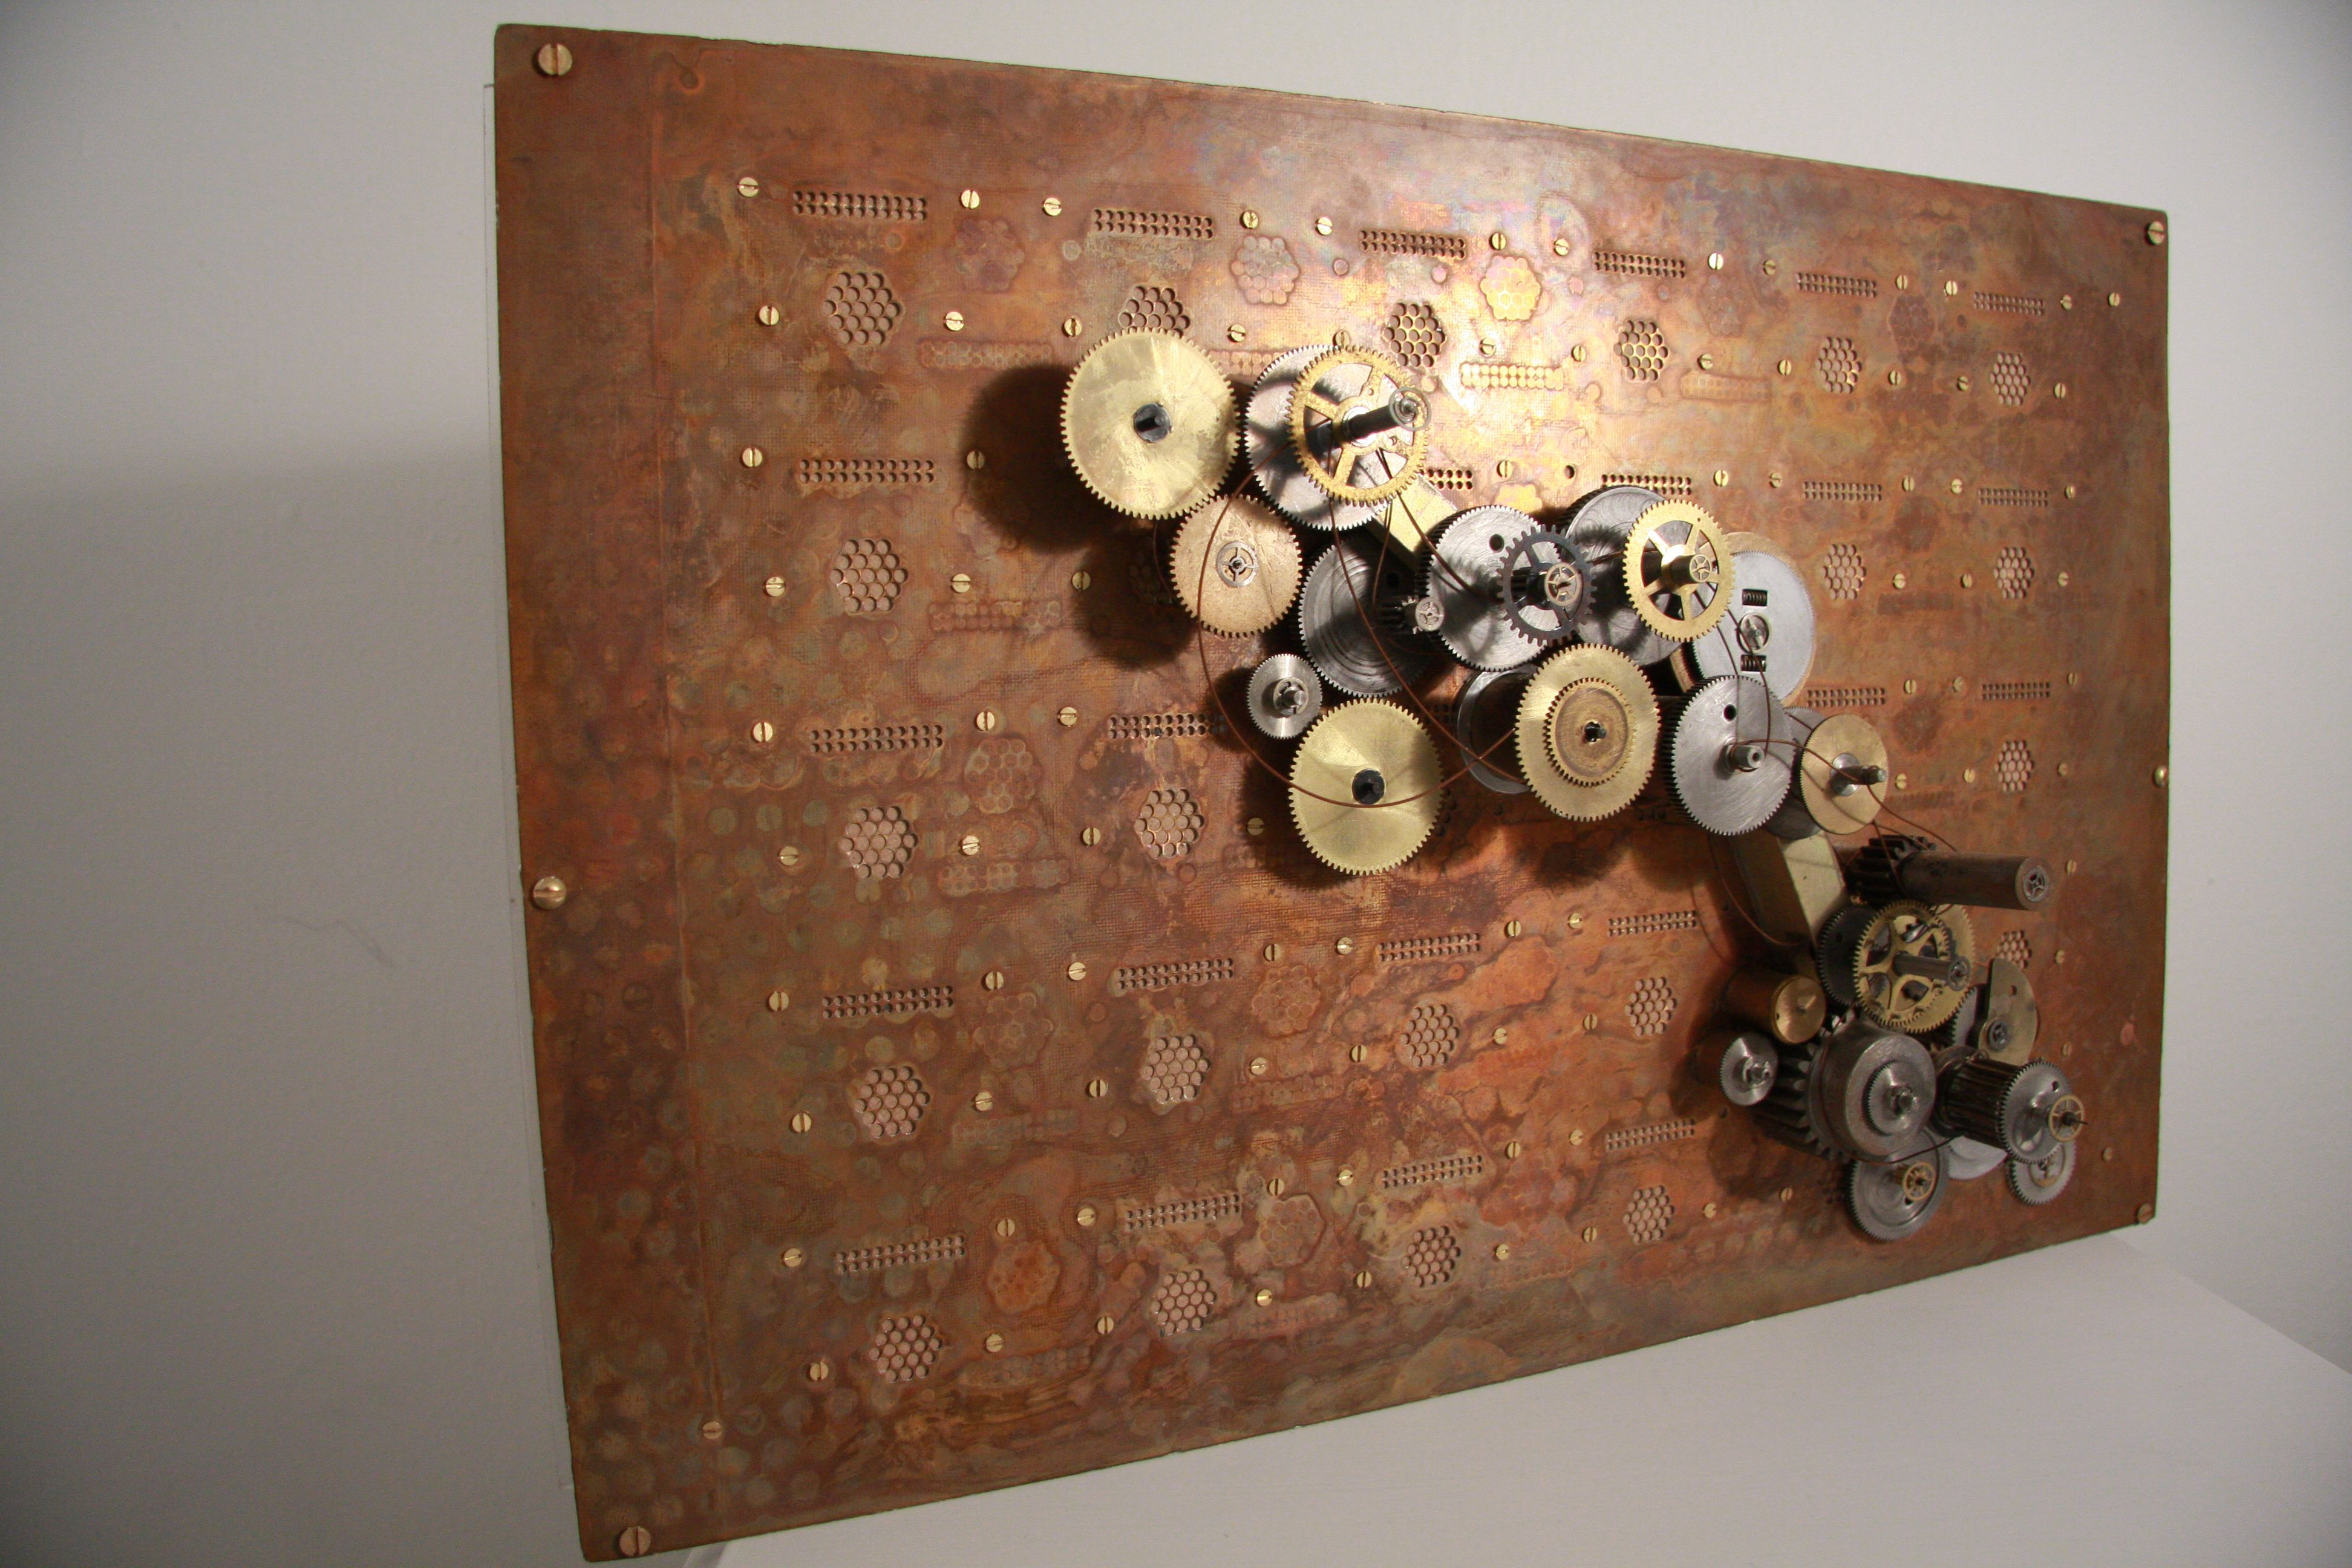 Circuit Board Clock Computer Steampunk Techi Recycled Copper Auto Old Boards Stock Images Image 13040664 Still Action Wall Art Pressed With A